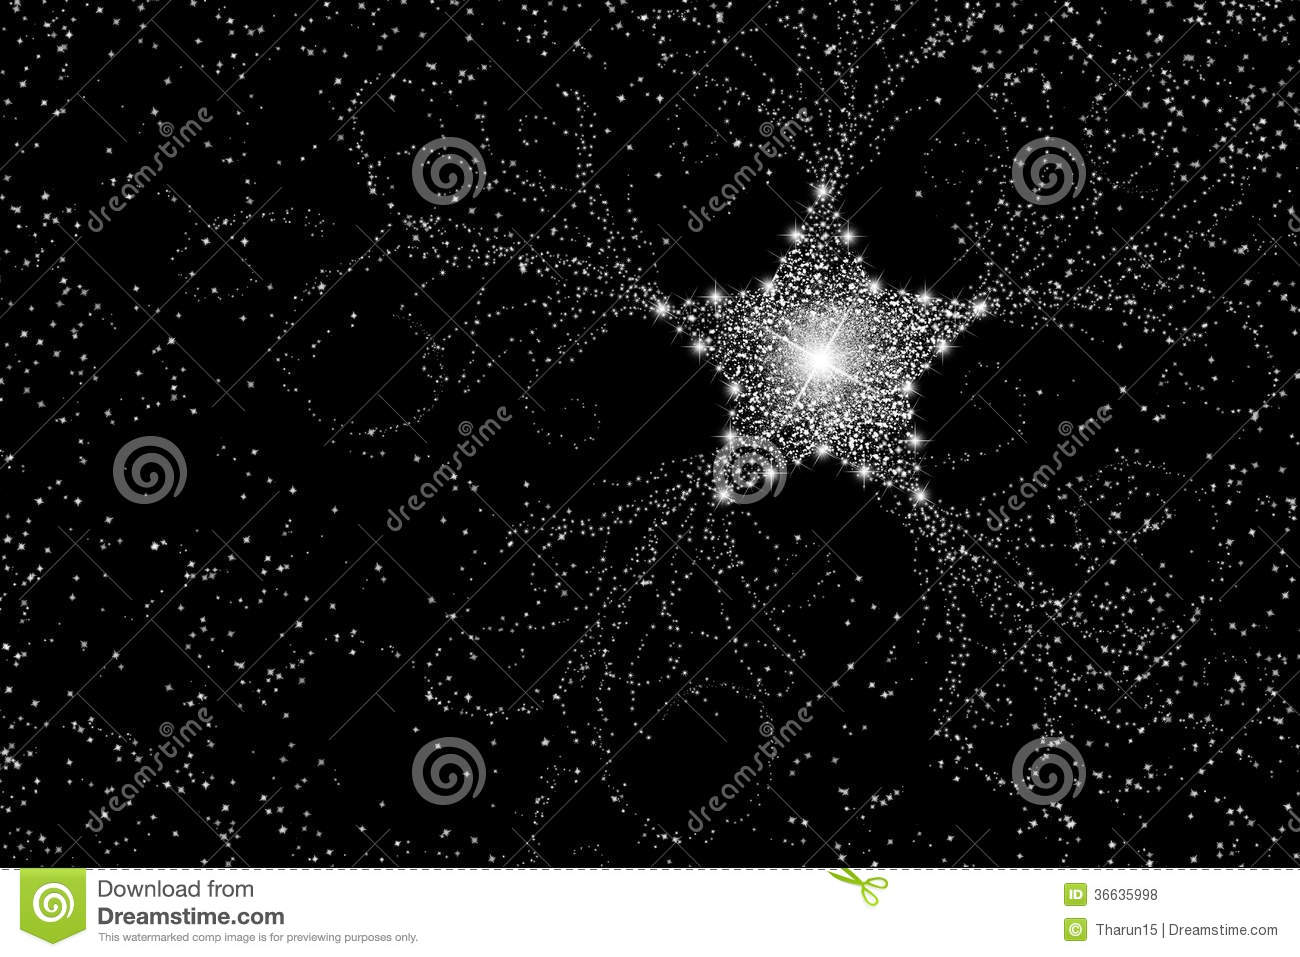 White Star Speckled Sky Royalty Free Stock Photos - Image: 36635998